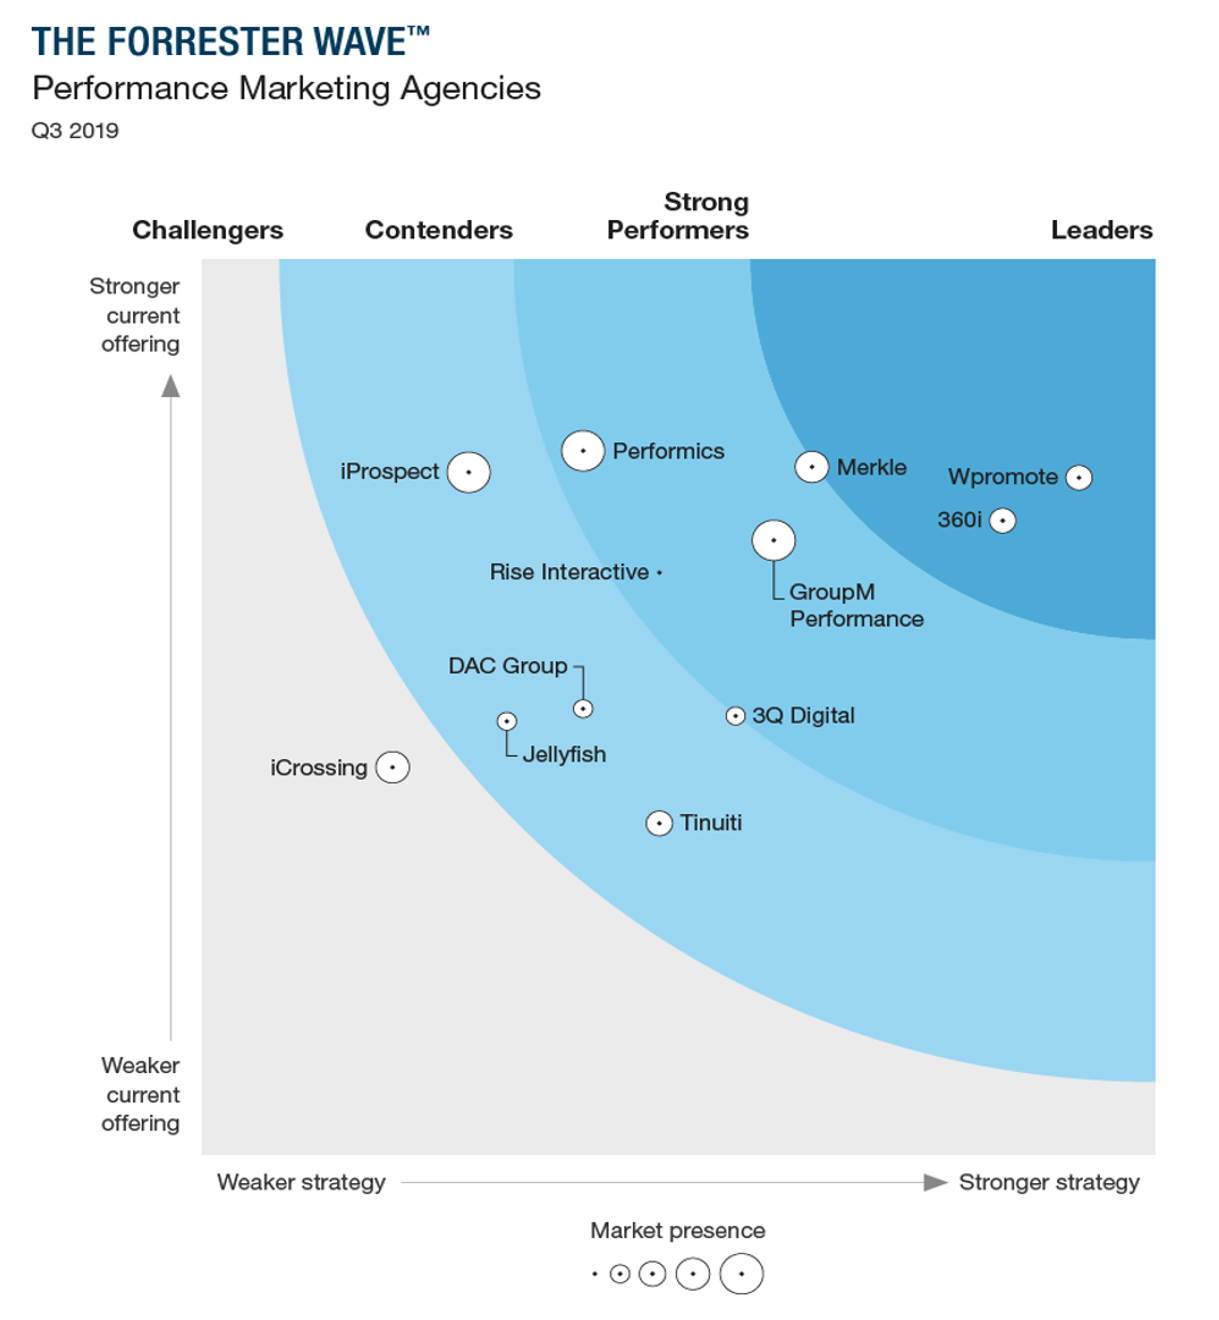 The Forrester Wave Performance Marketing Agencies, Q3 2019